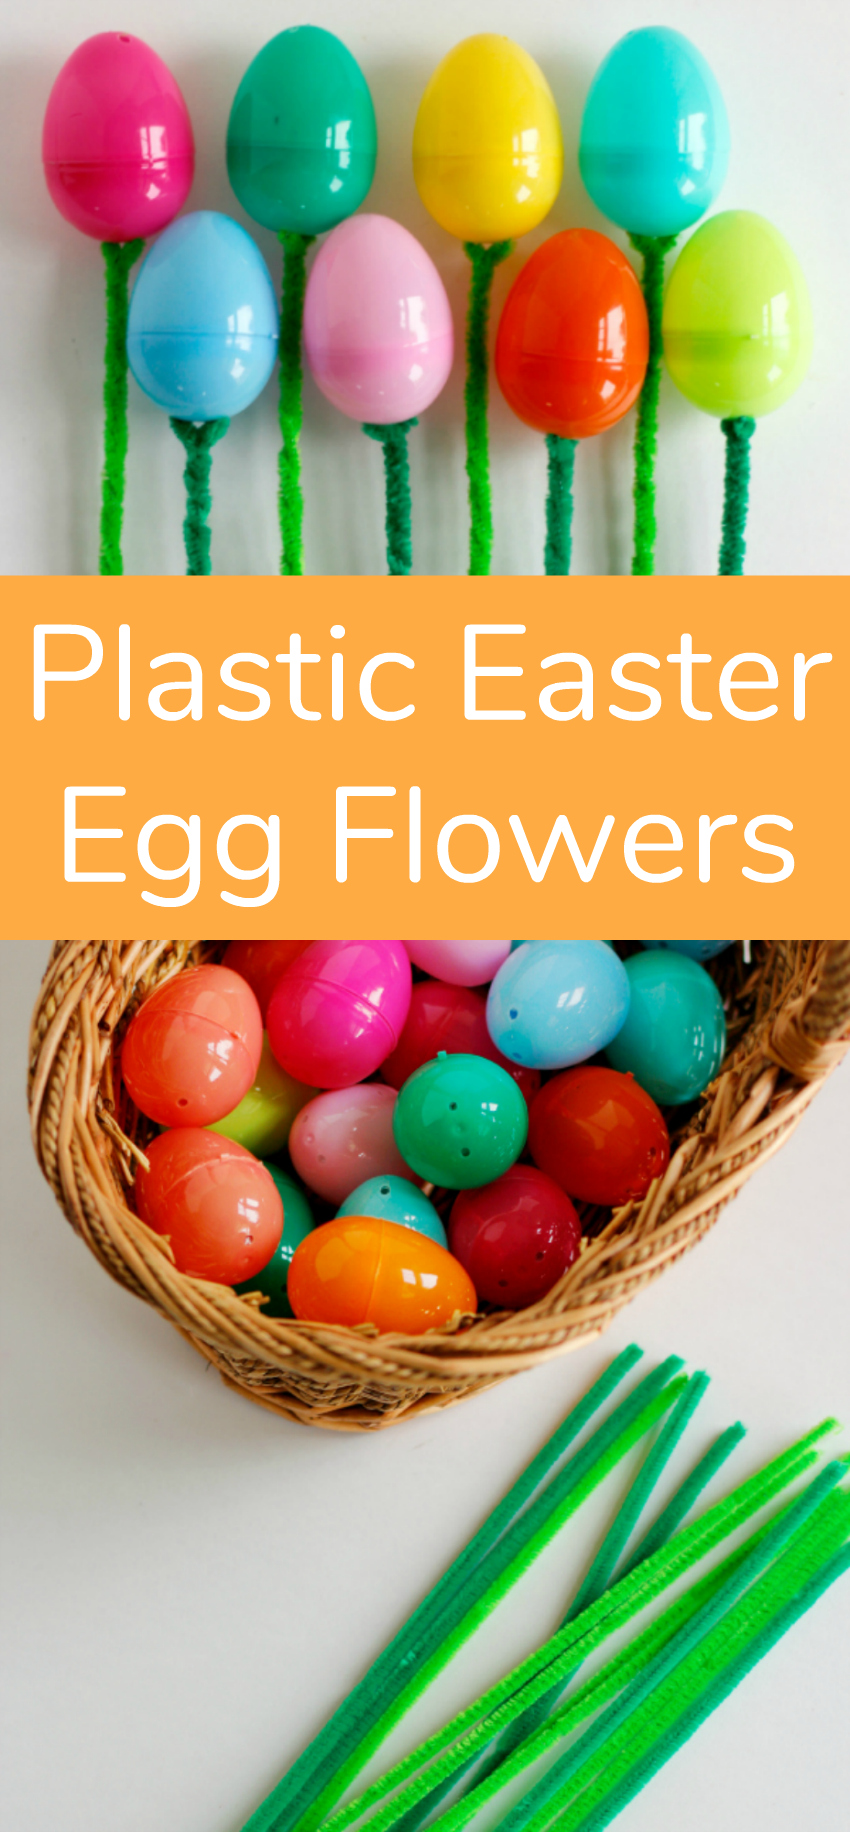 Plastic Easter Egg Flowers Tutorial